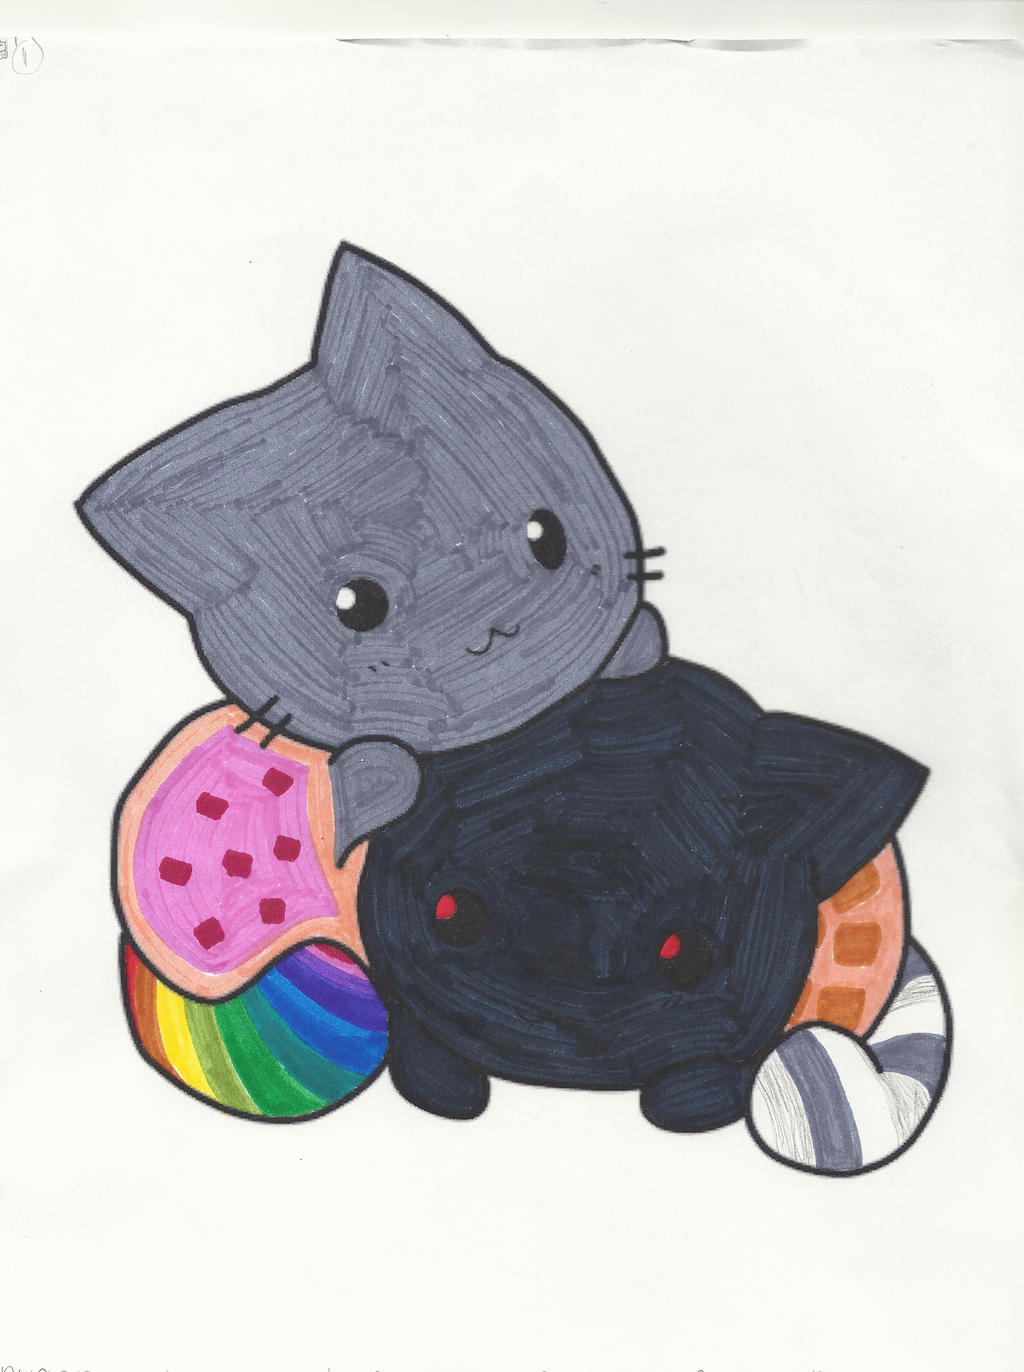 Nyan cat coloring page by jaybird28 on DeviantArt